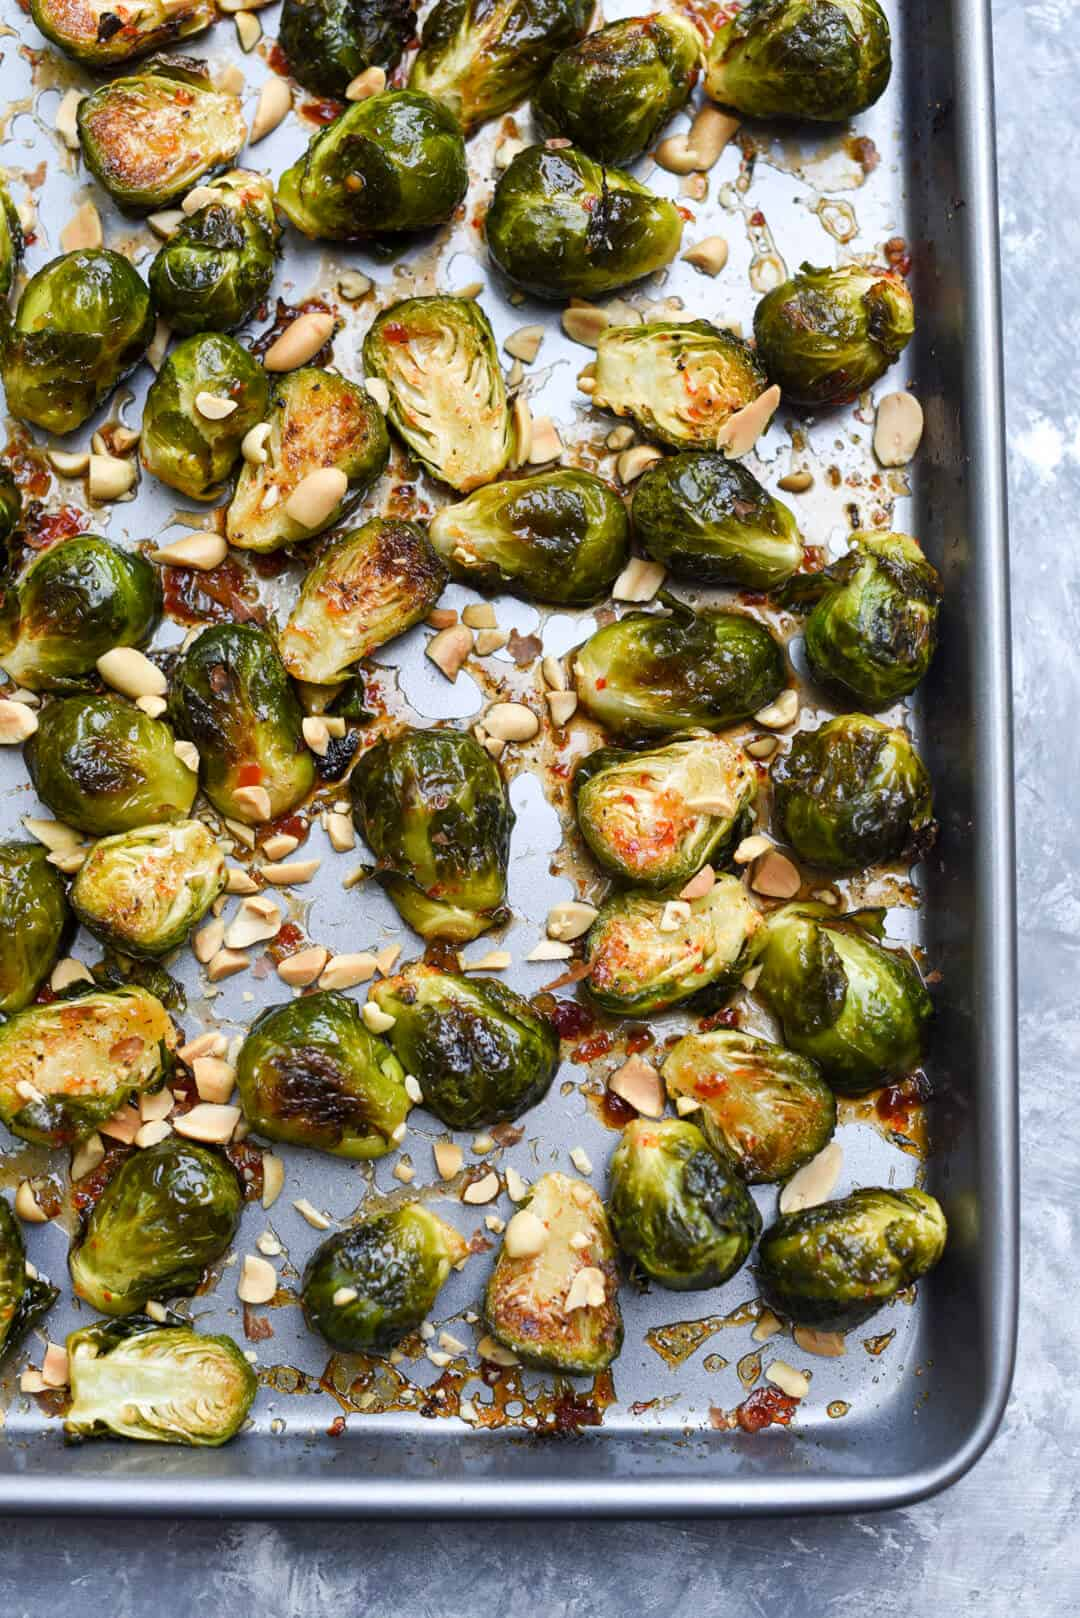 A baking sheet full of Chili Garlic Roasted Brussels Sprouts shot from over the top.